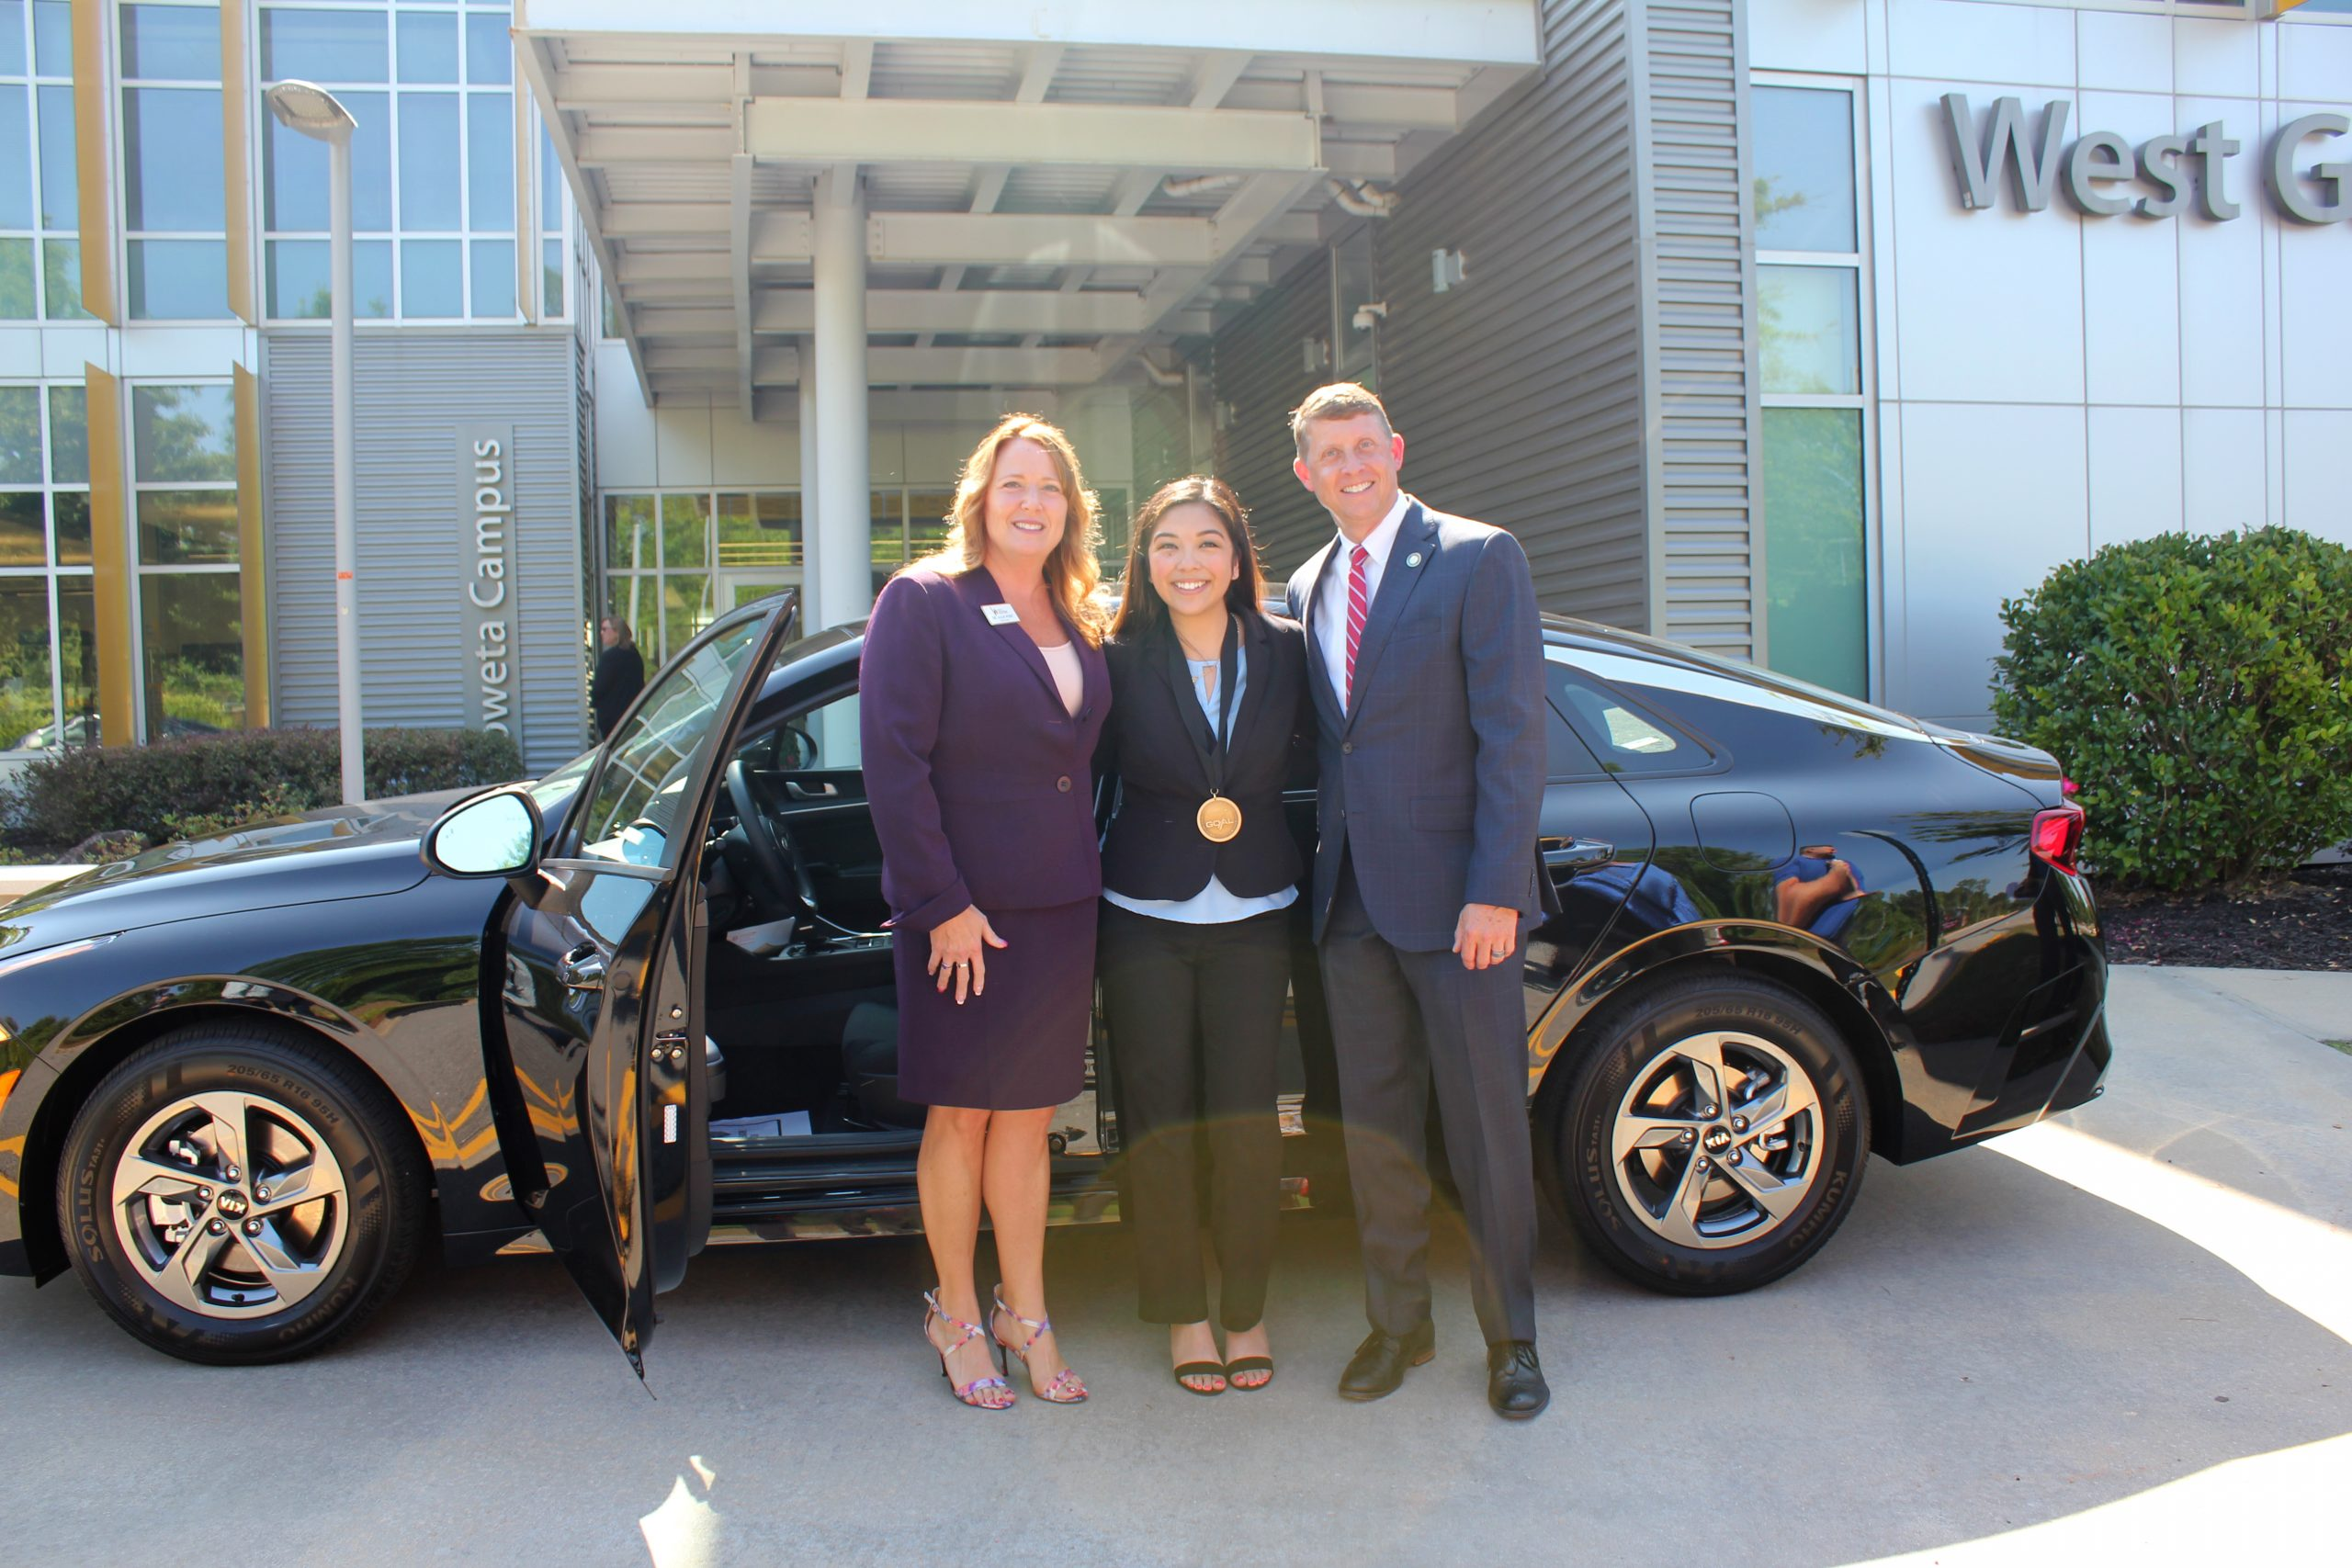 Rodriguez with president and commissioner in front of a kia